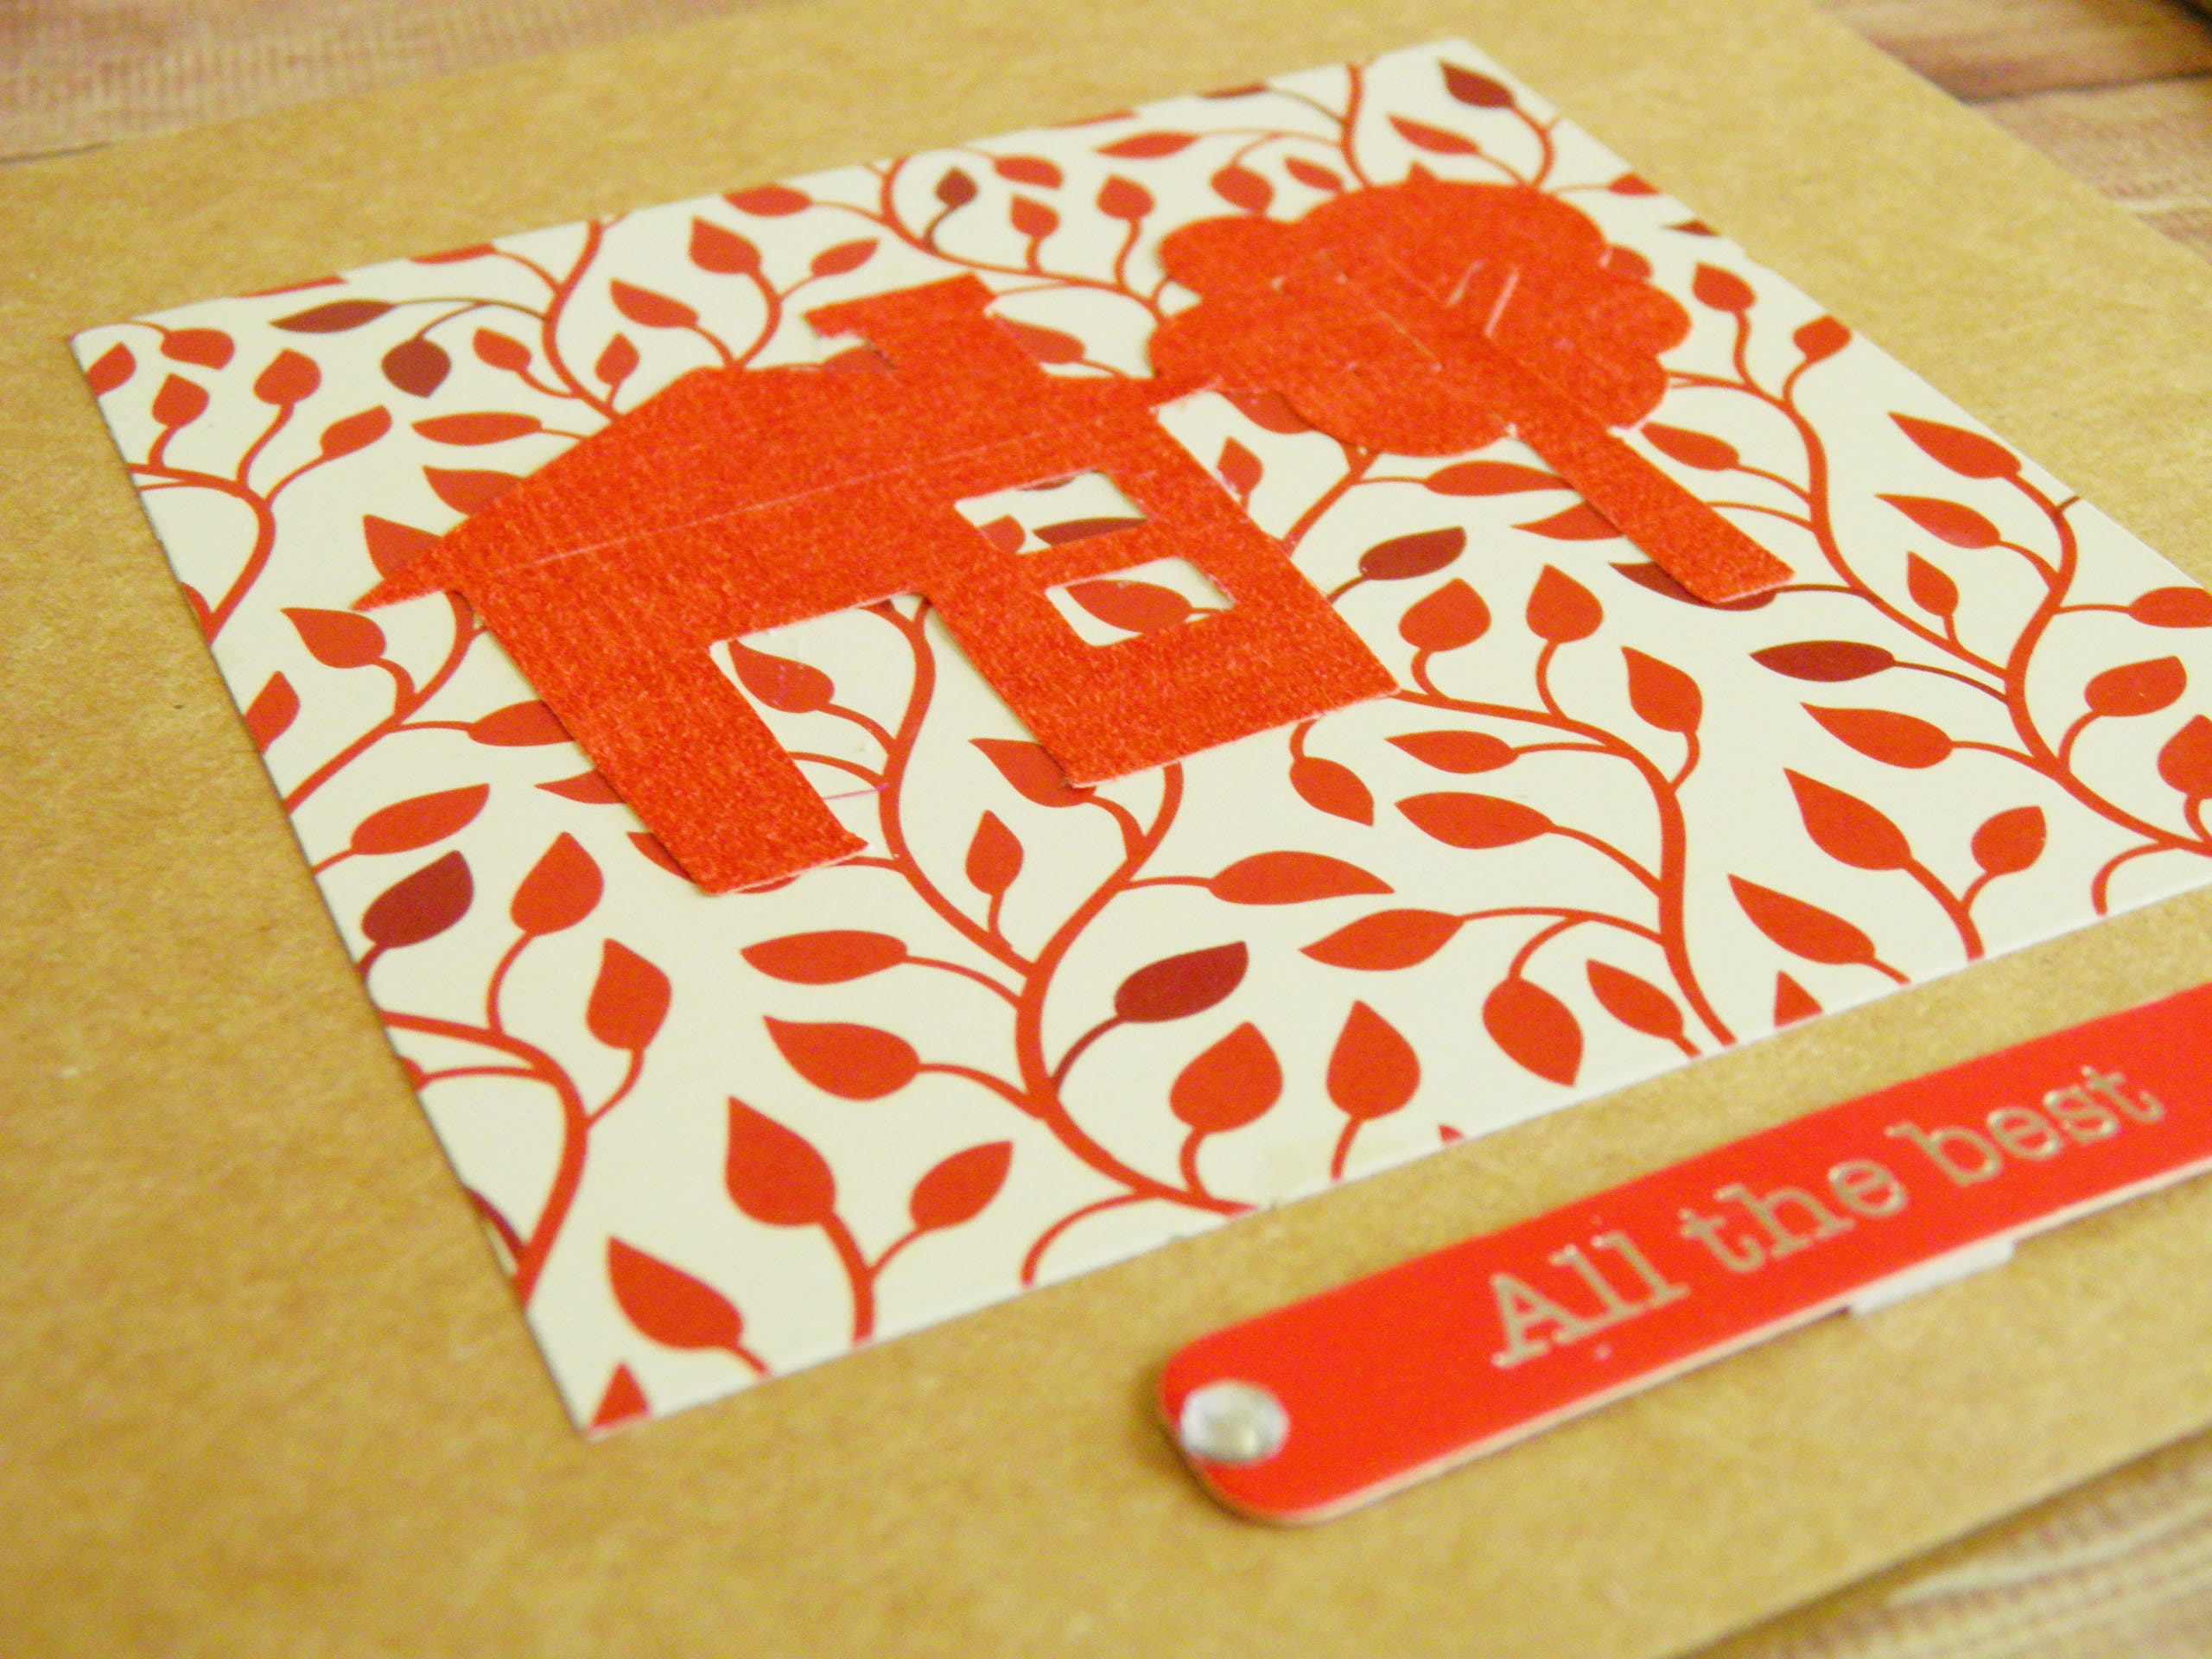 Red house handmade housewarming card handmade paper crafts red house handmade housewarming card handmade paper crafts congratulations new house kristyandbryce Image collections